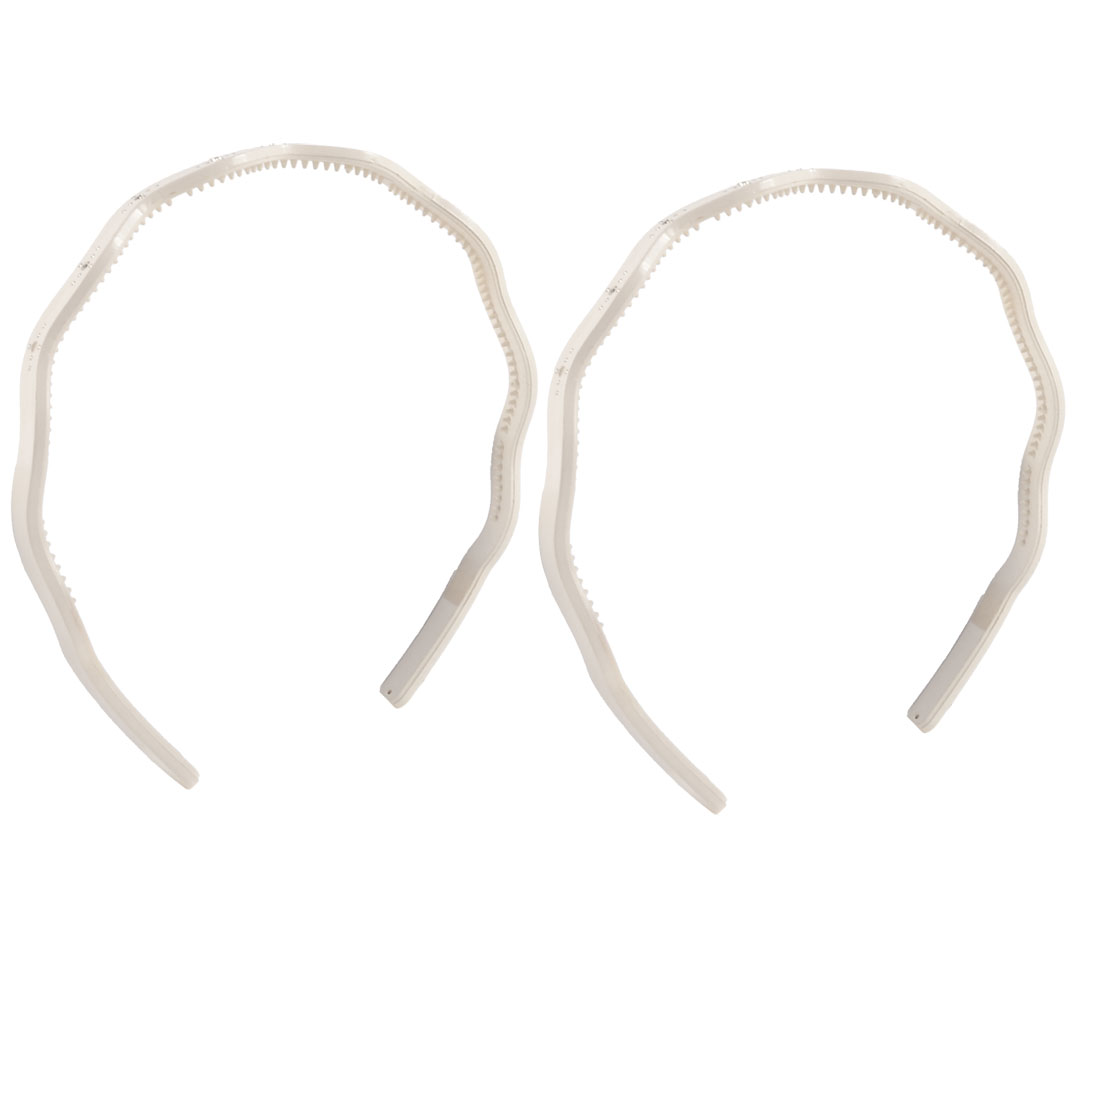 Lady Faux Rhinestones Decor Off White Plastic Hairband Hair Band 2 Pcs